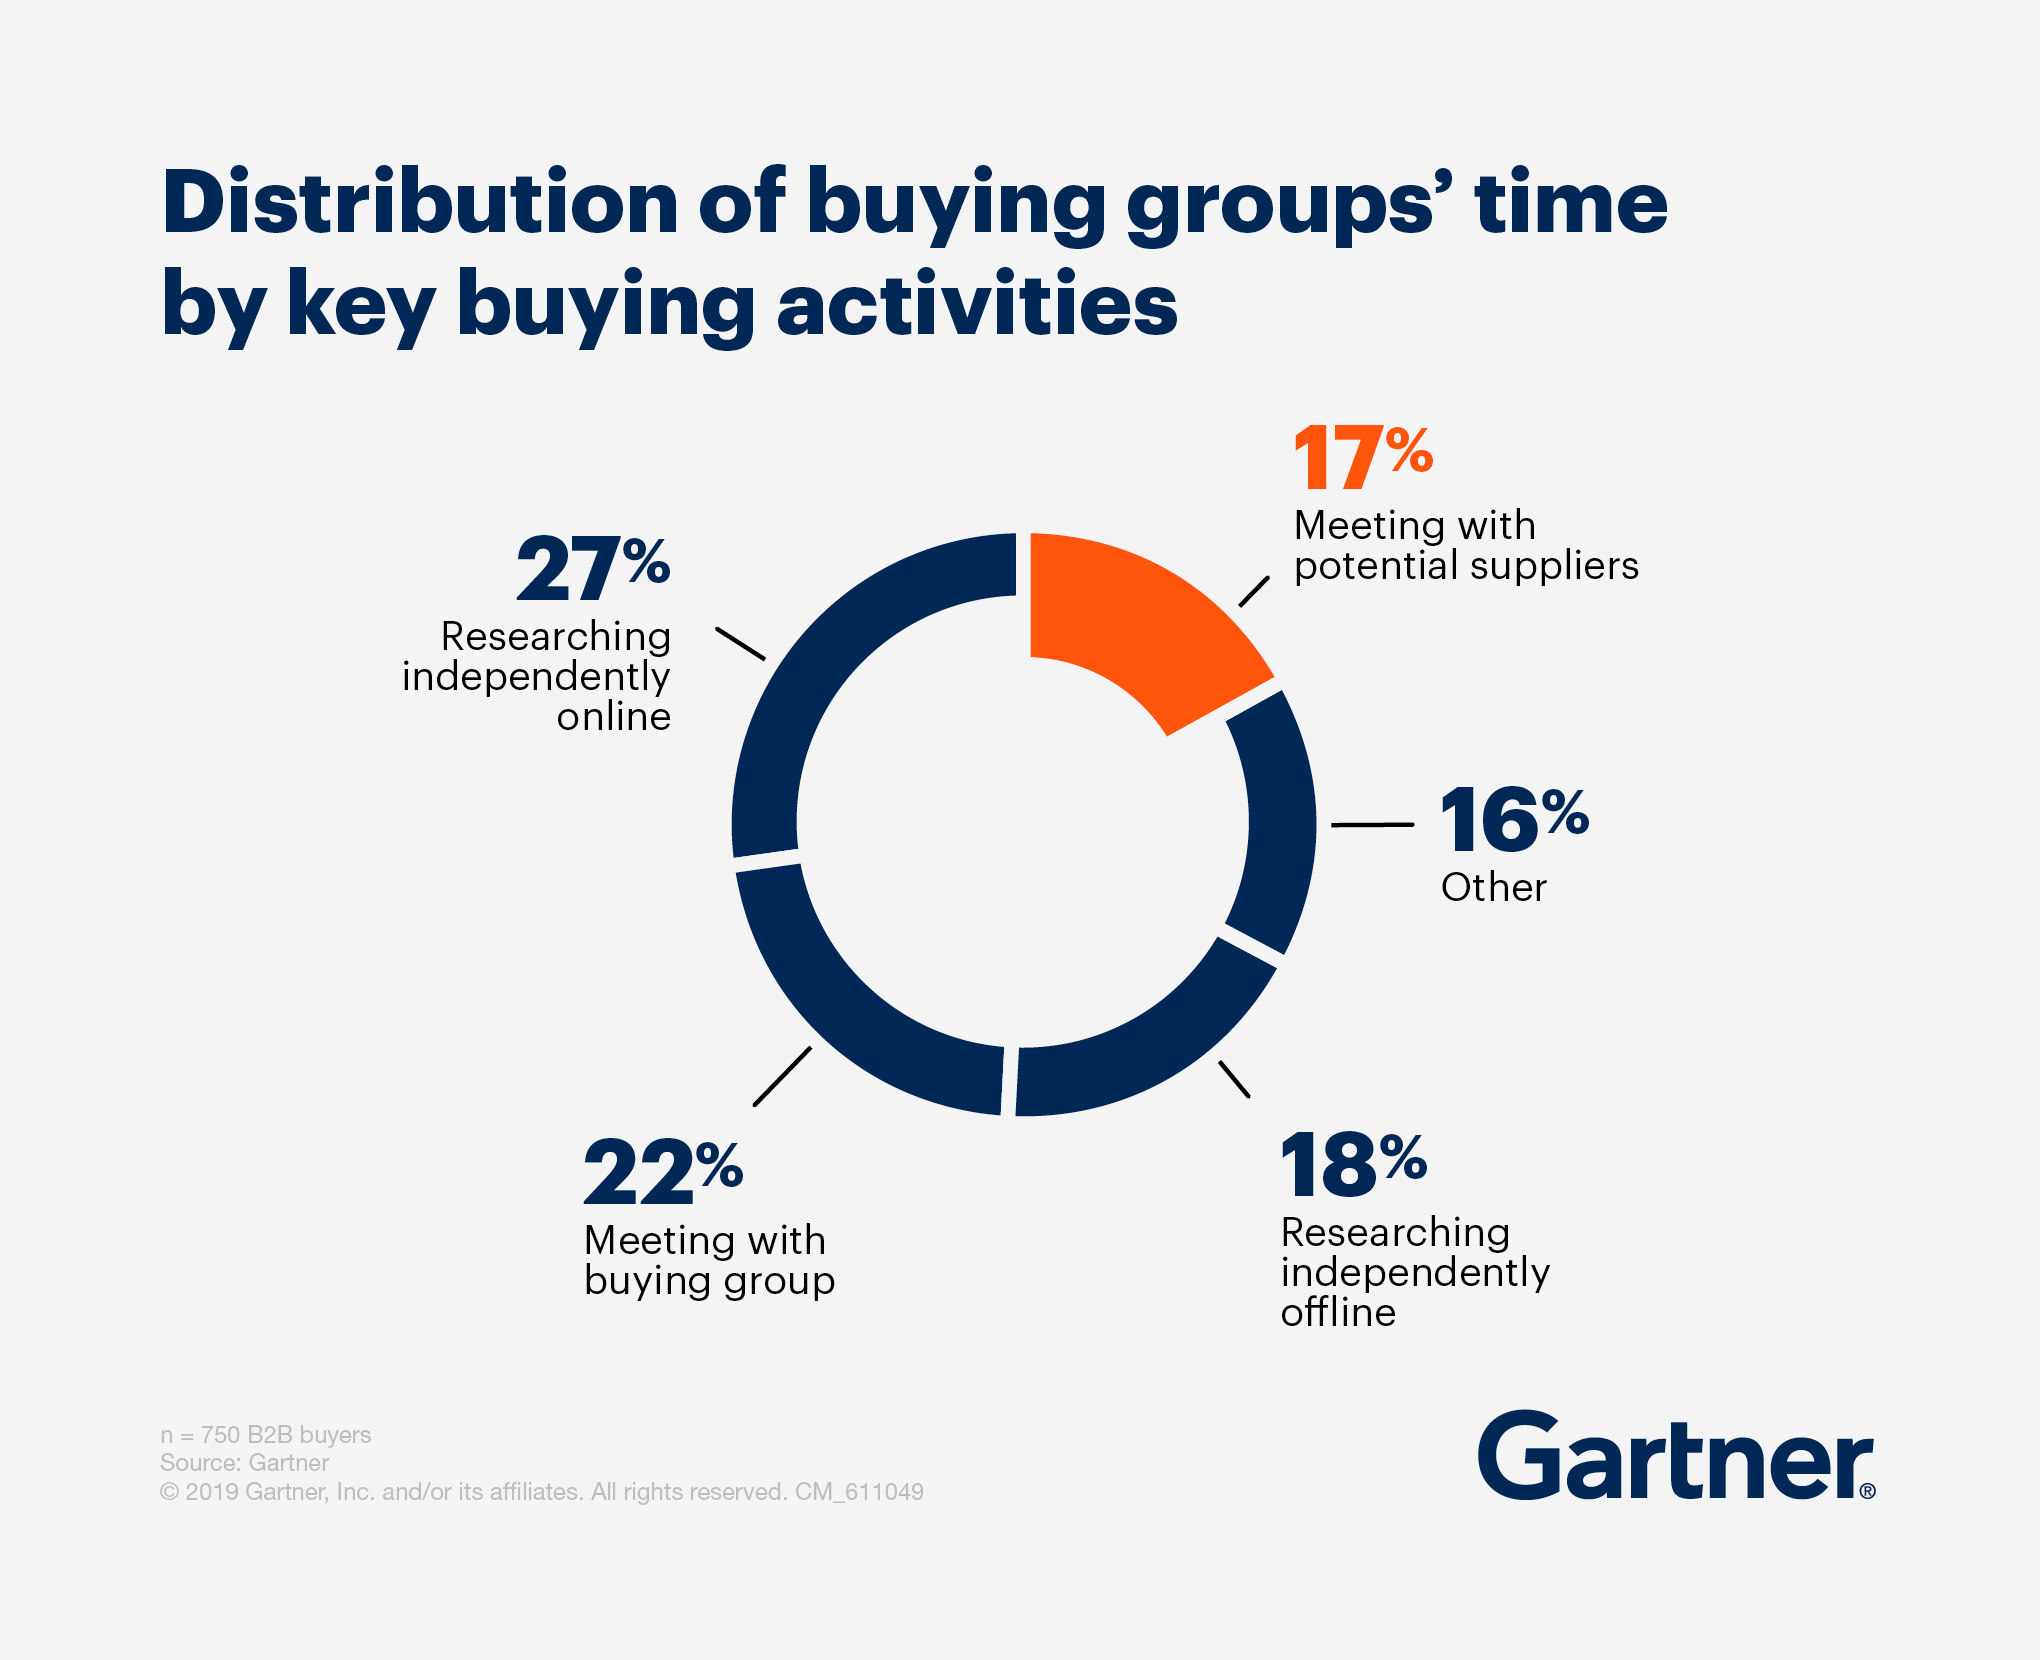 A pie chart showing the distribution of buying groups' time by key buying activities. Meeting with potential suppliers occupies 17 percent. Researching independently online occupies 27 percent. Meeting with buying group occupies 22 percent. Researching independently offline occupies 18 percent. And other occupies the remaining 16 percent.